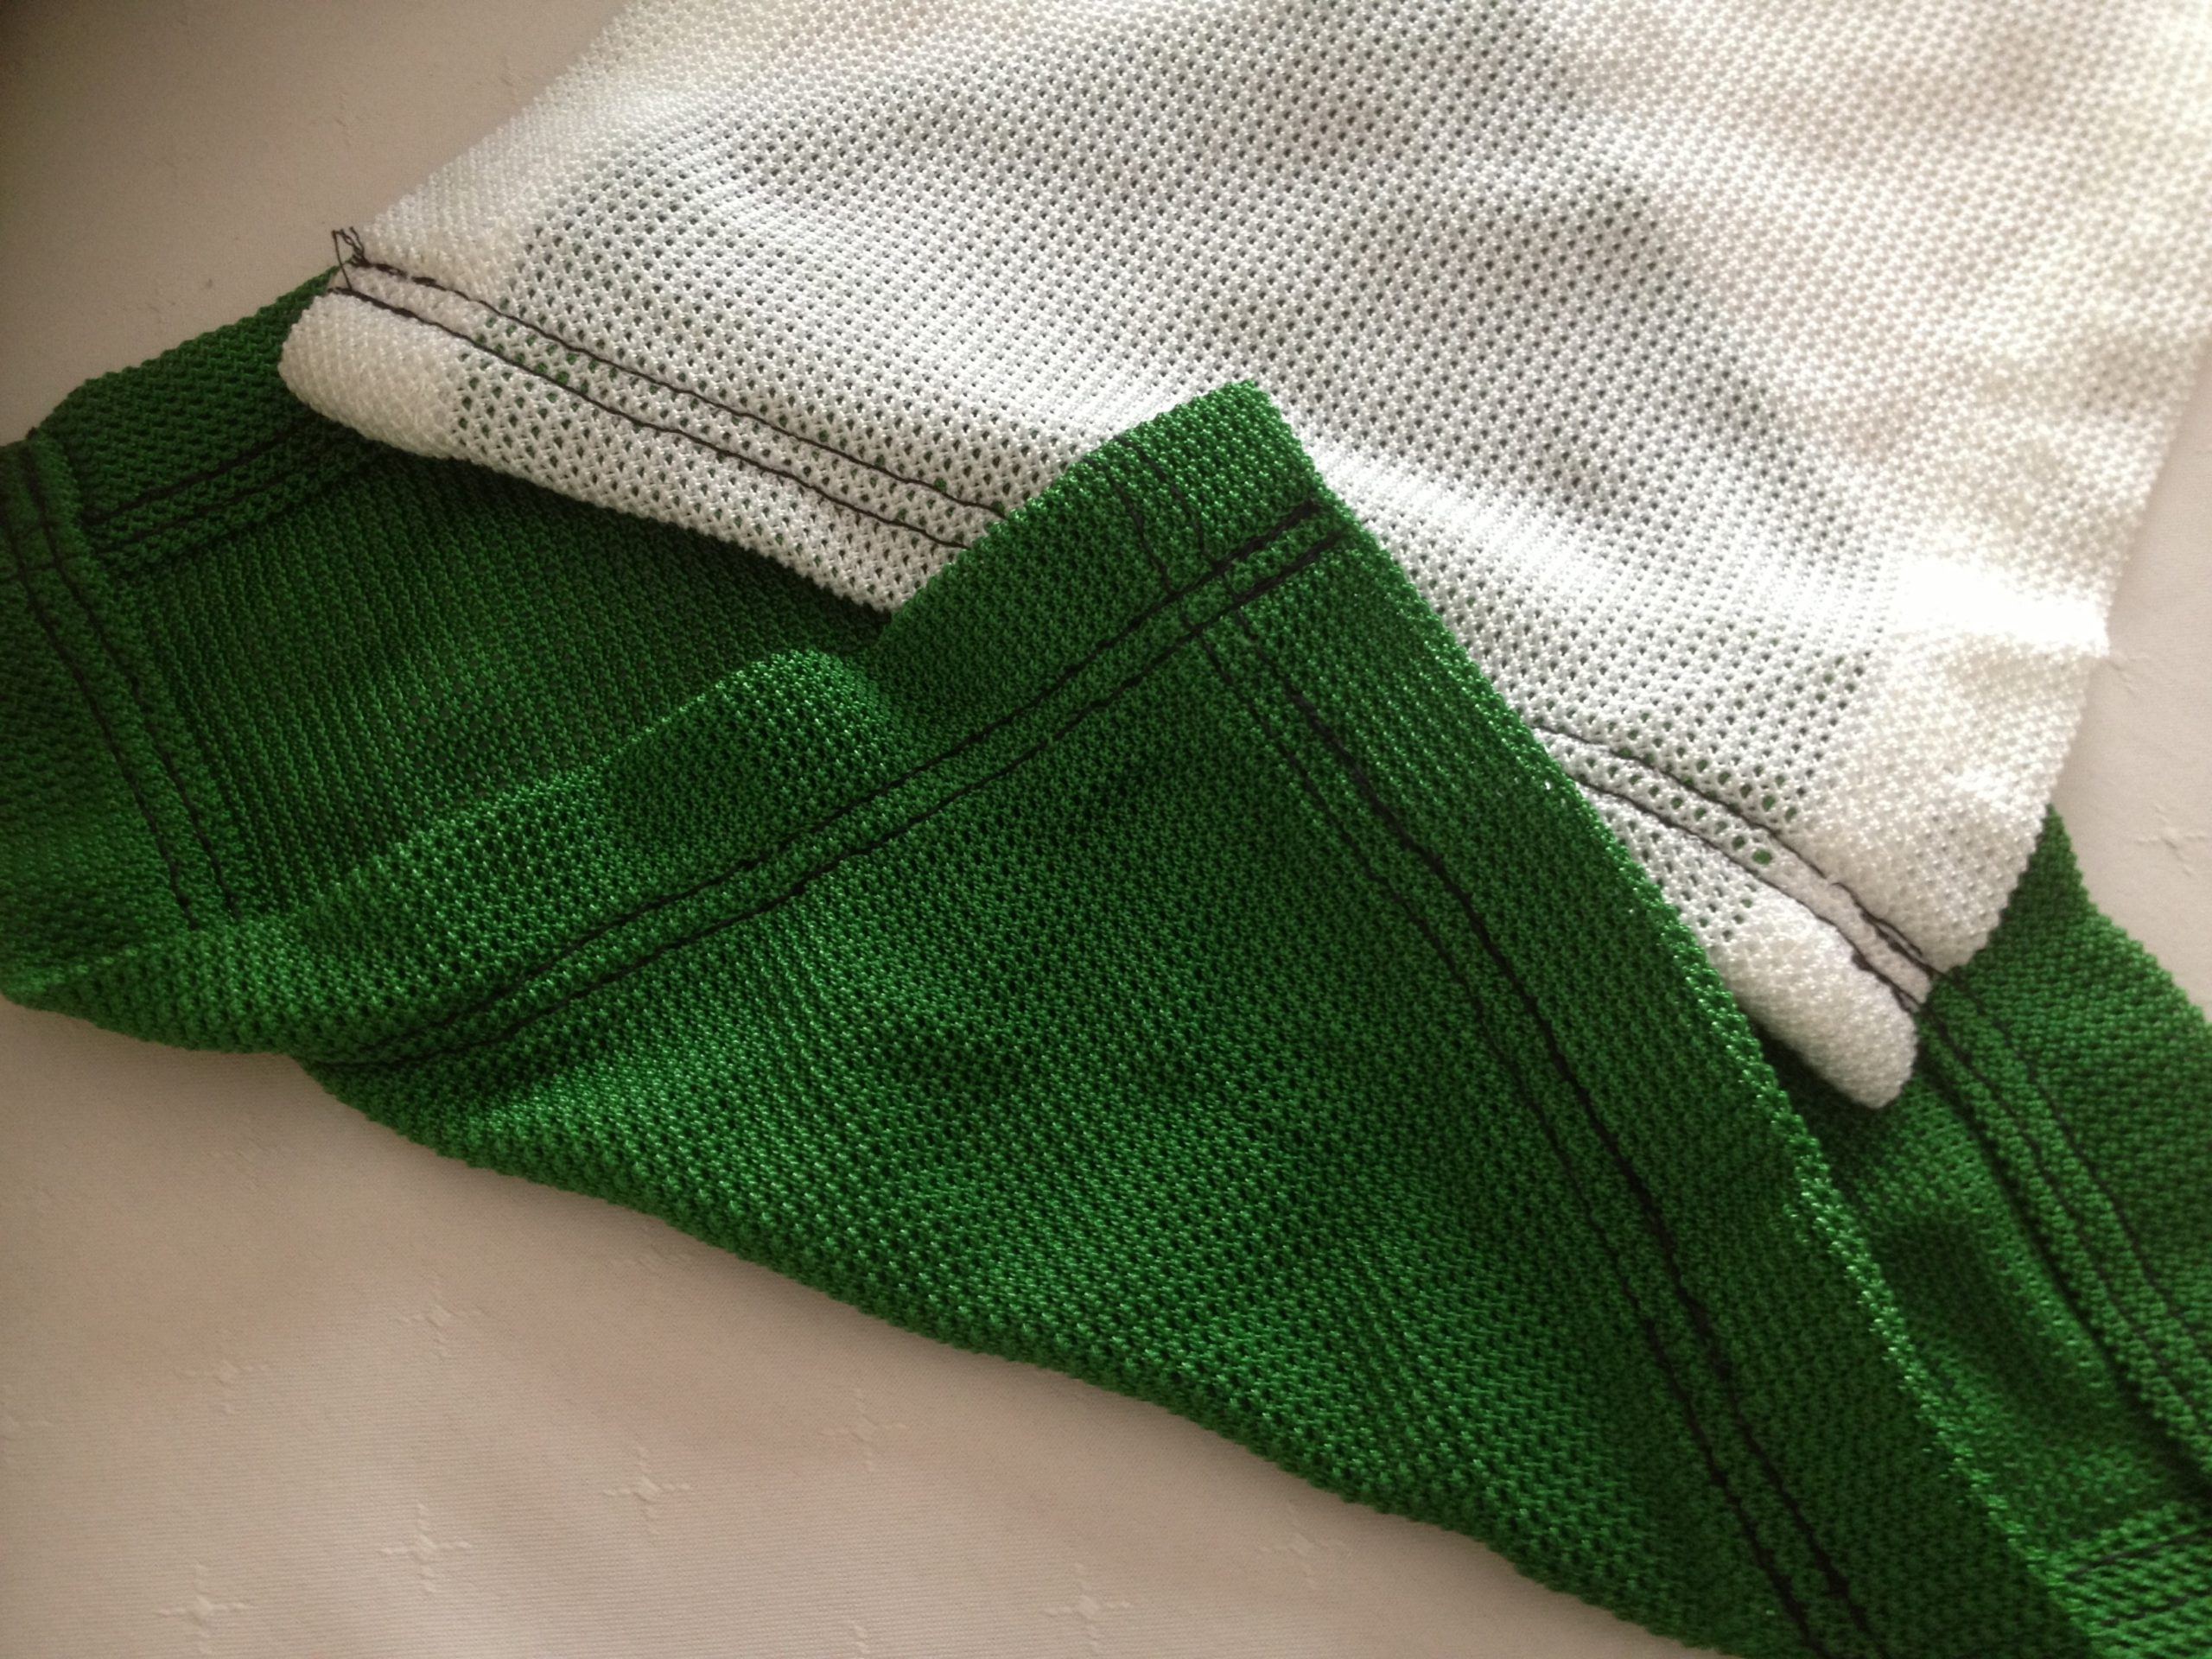 Archery and Golf impact Nets made to measure in green or white